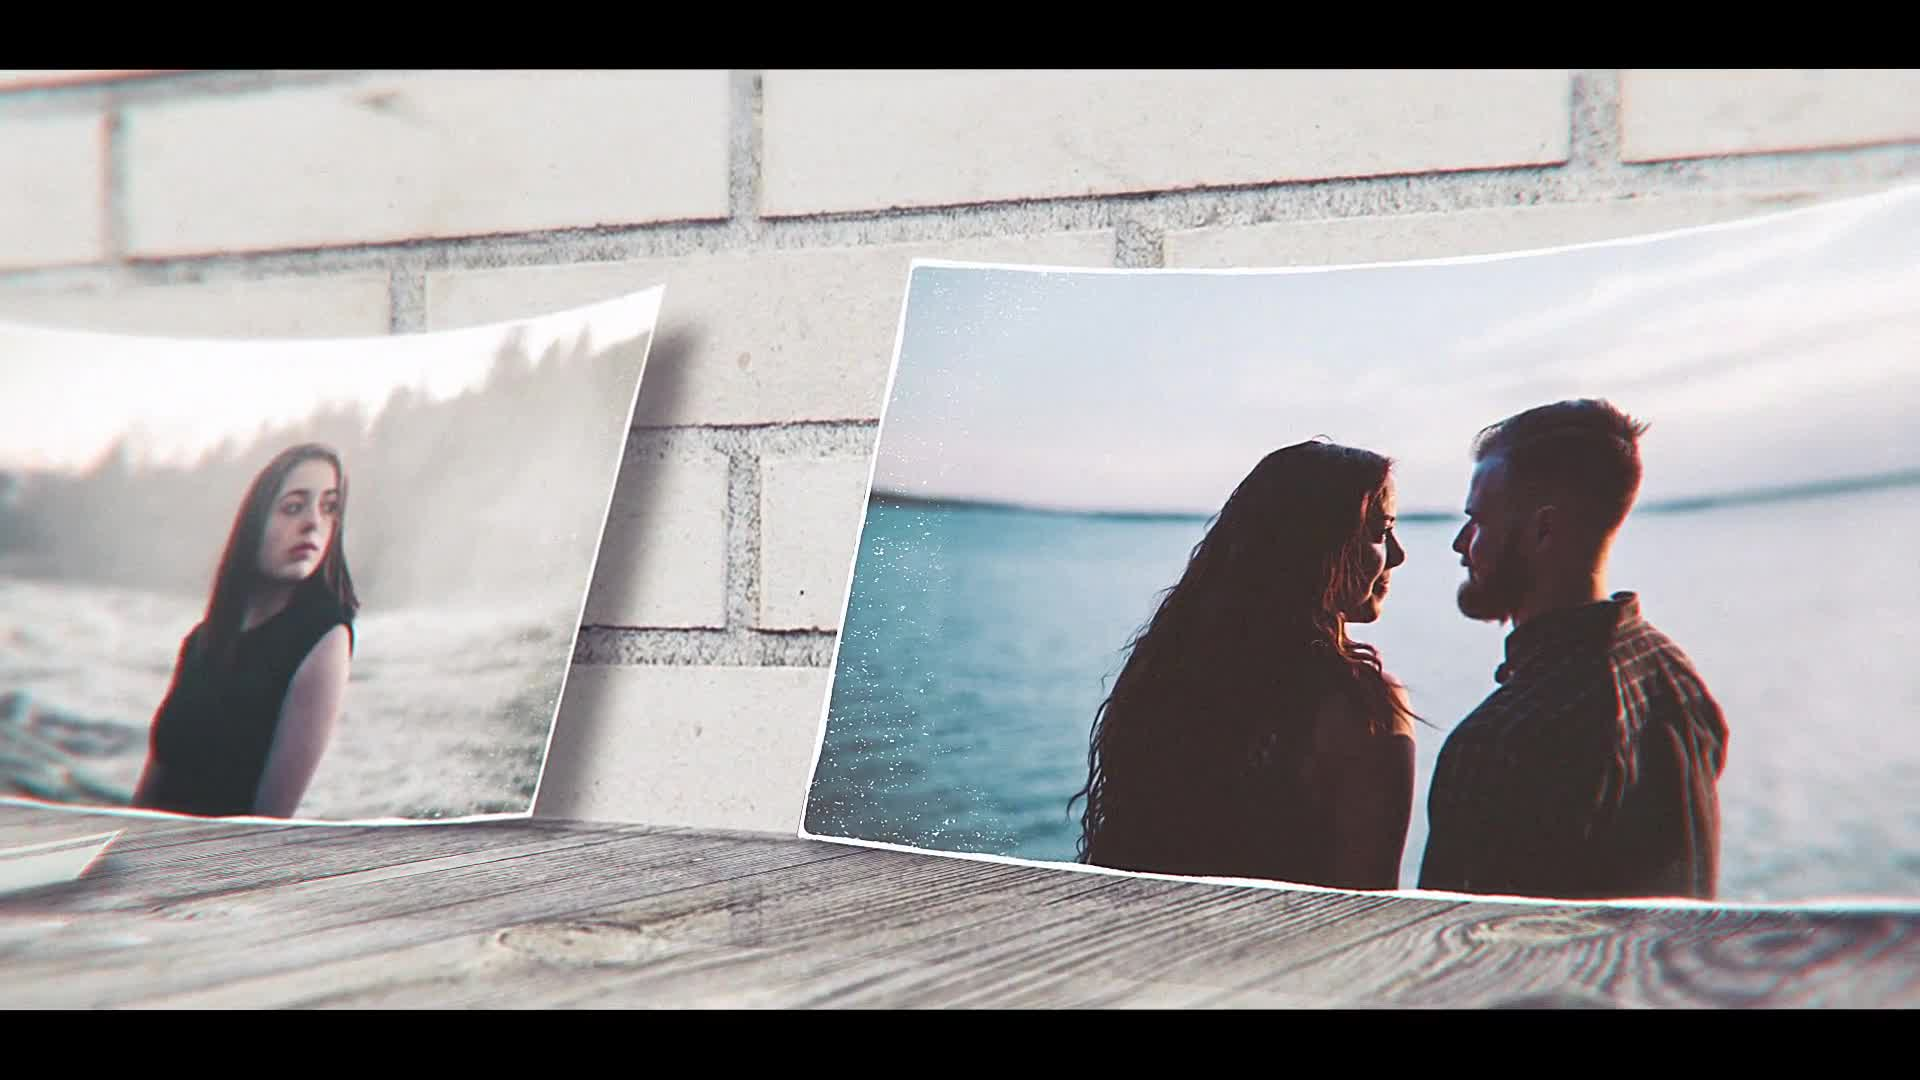 Memory Photo Slideshow - Download Videohive 22010485